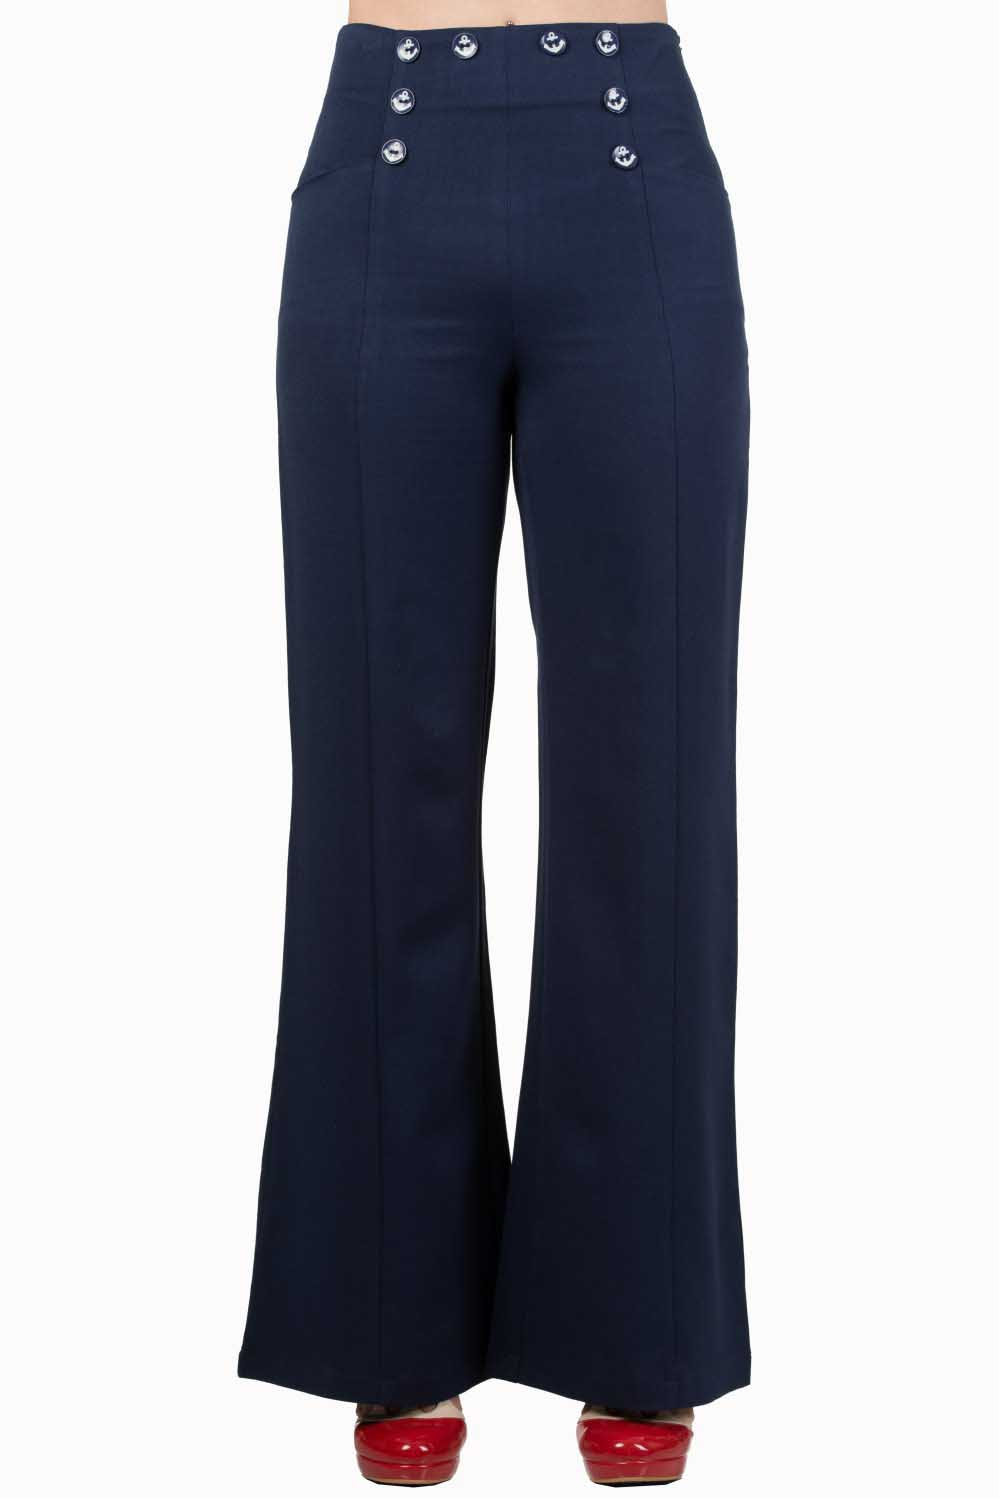 Dancing Days by Banned 40s Stay Awhile Navy Trousers